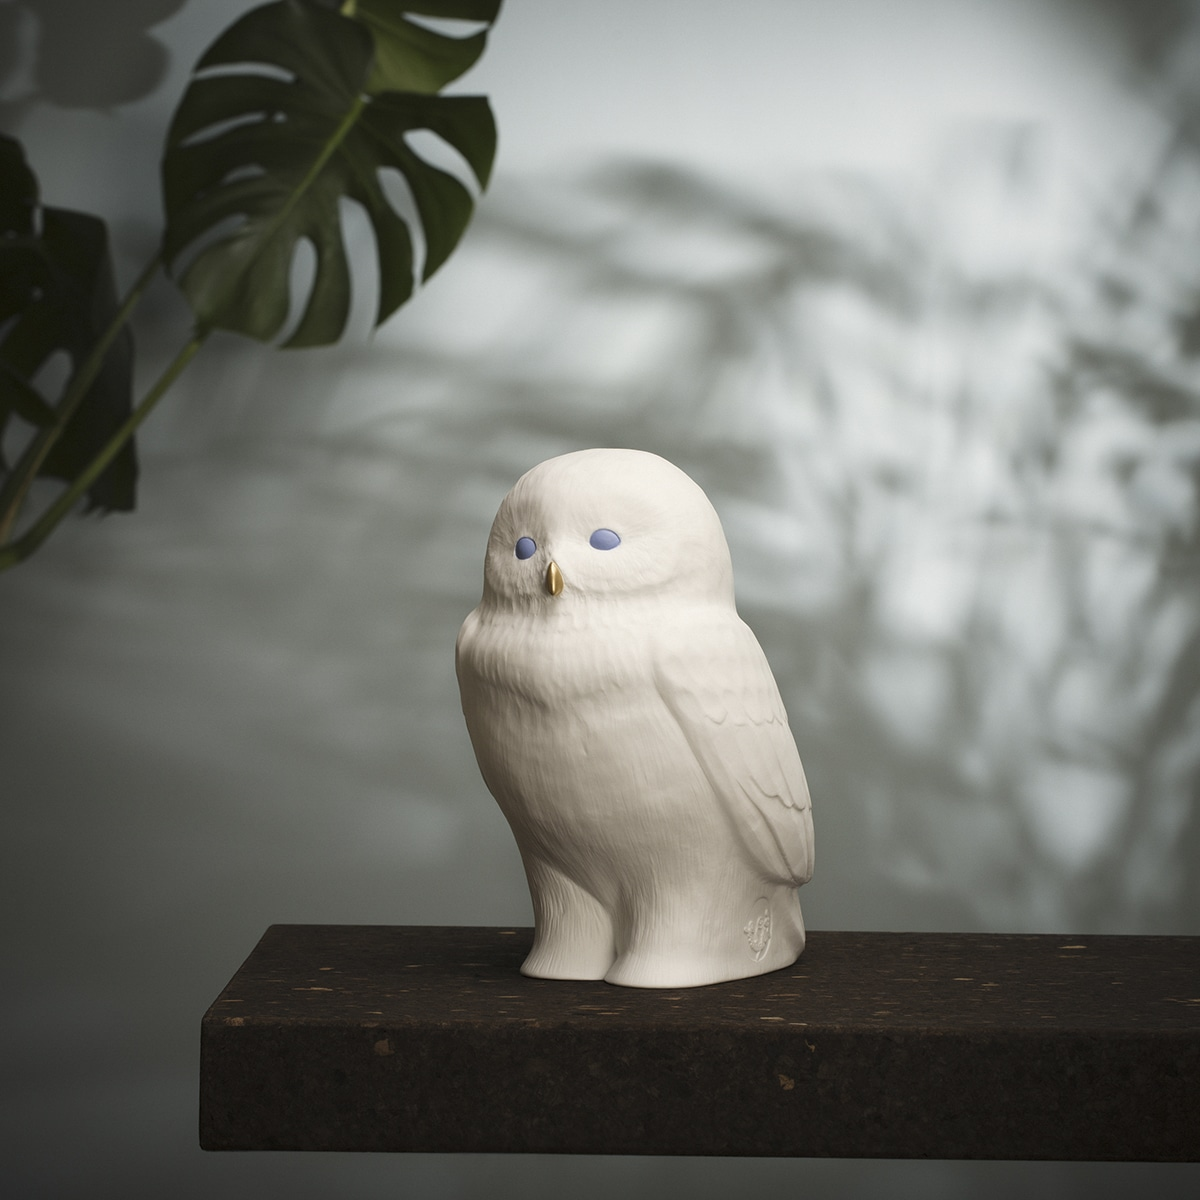 Lampe akira the owl blanc/bleu goodnight light zeeloft